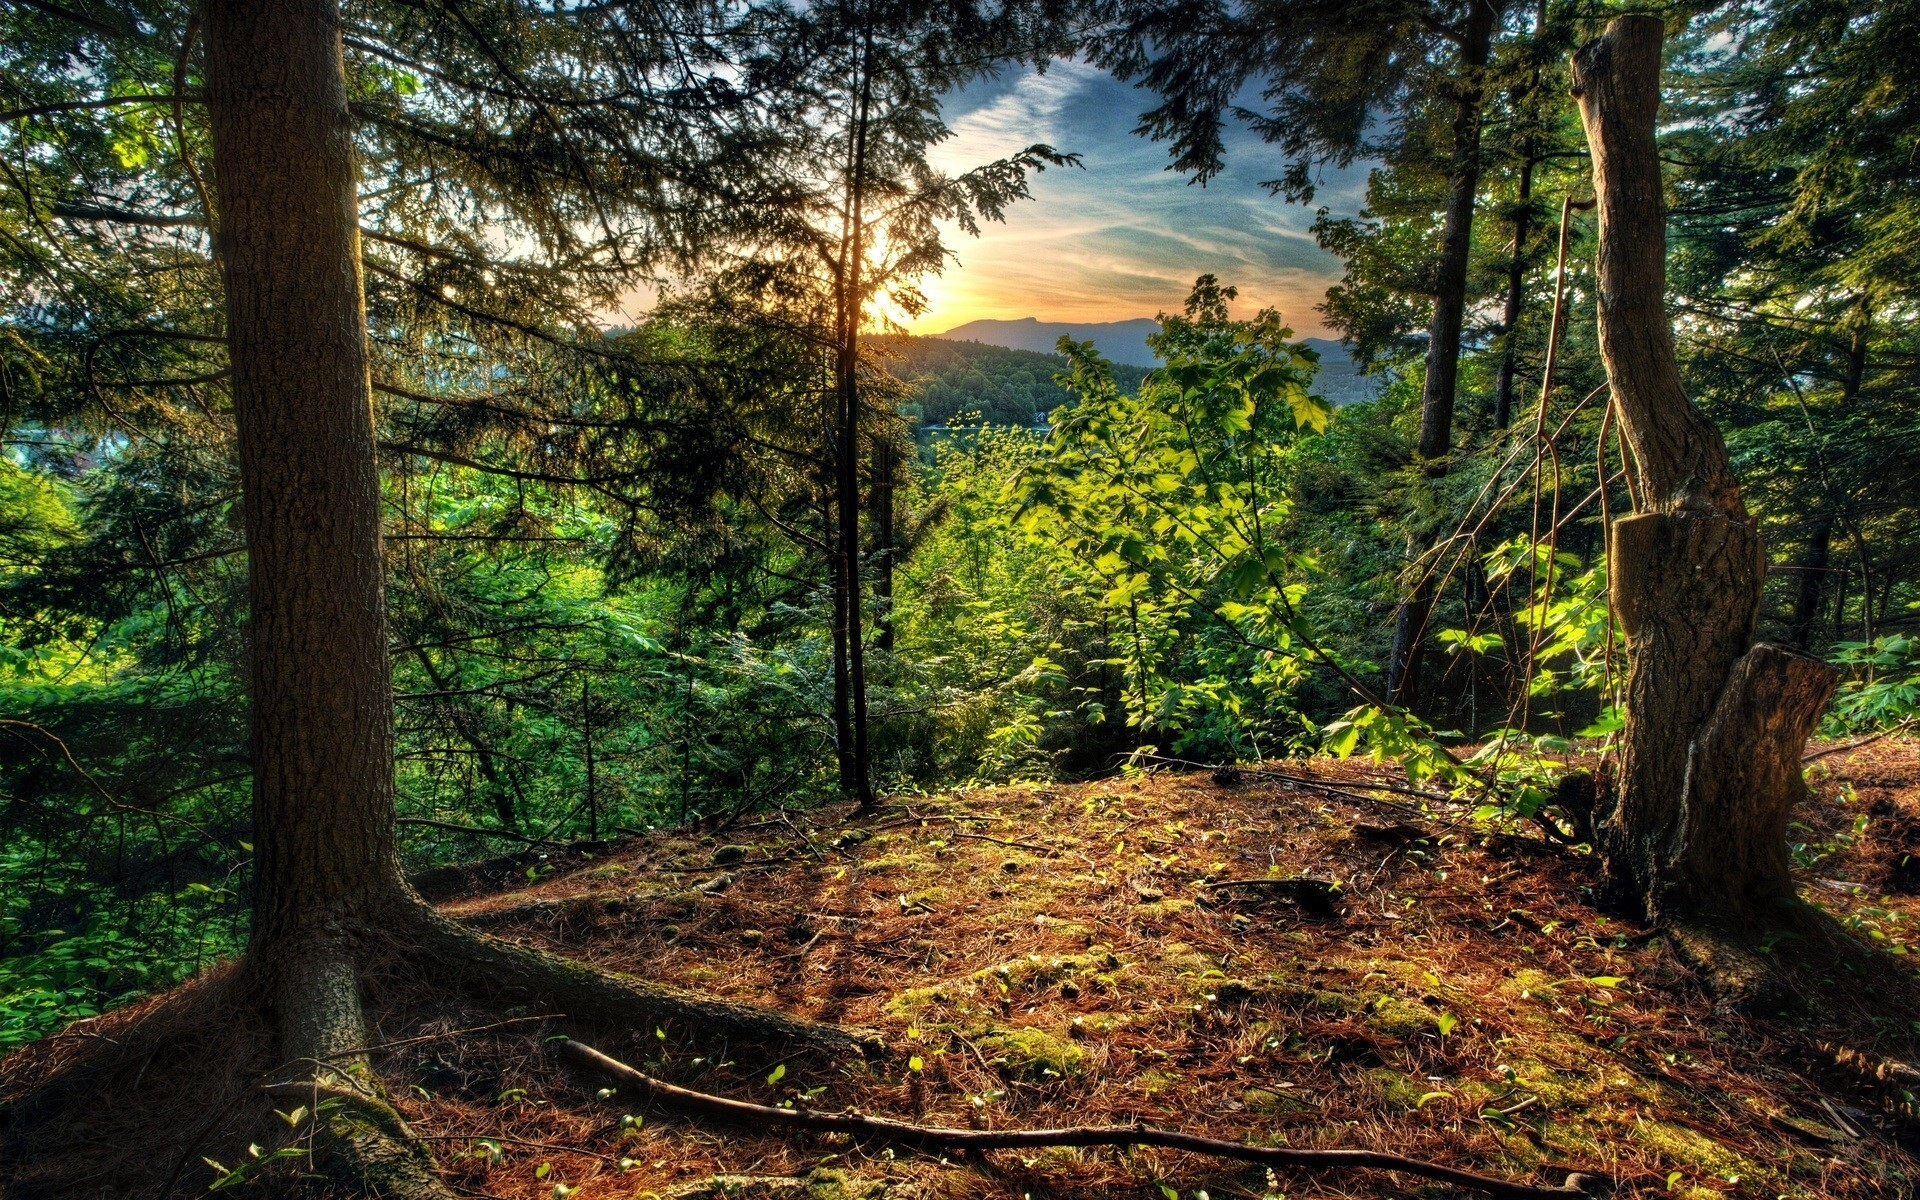 Big Beautiful Nature Green Forest Images